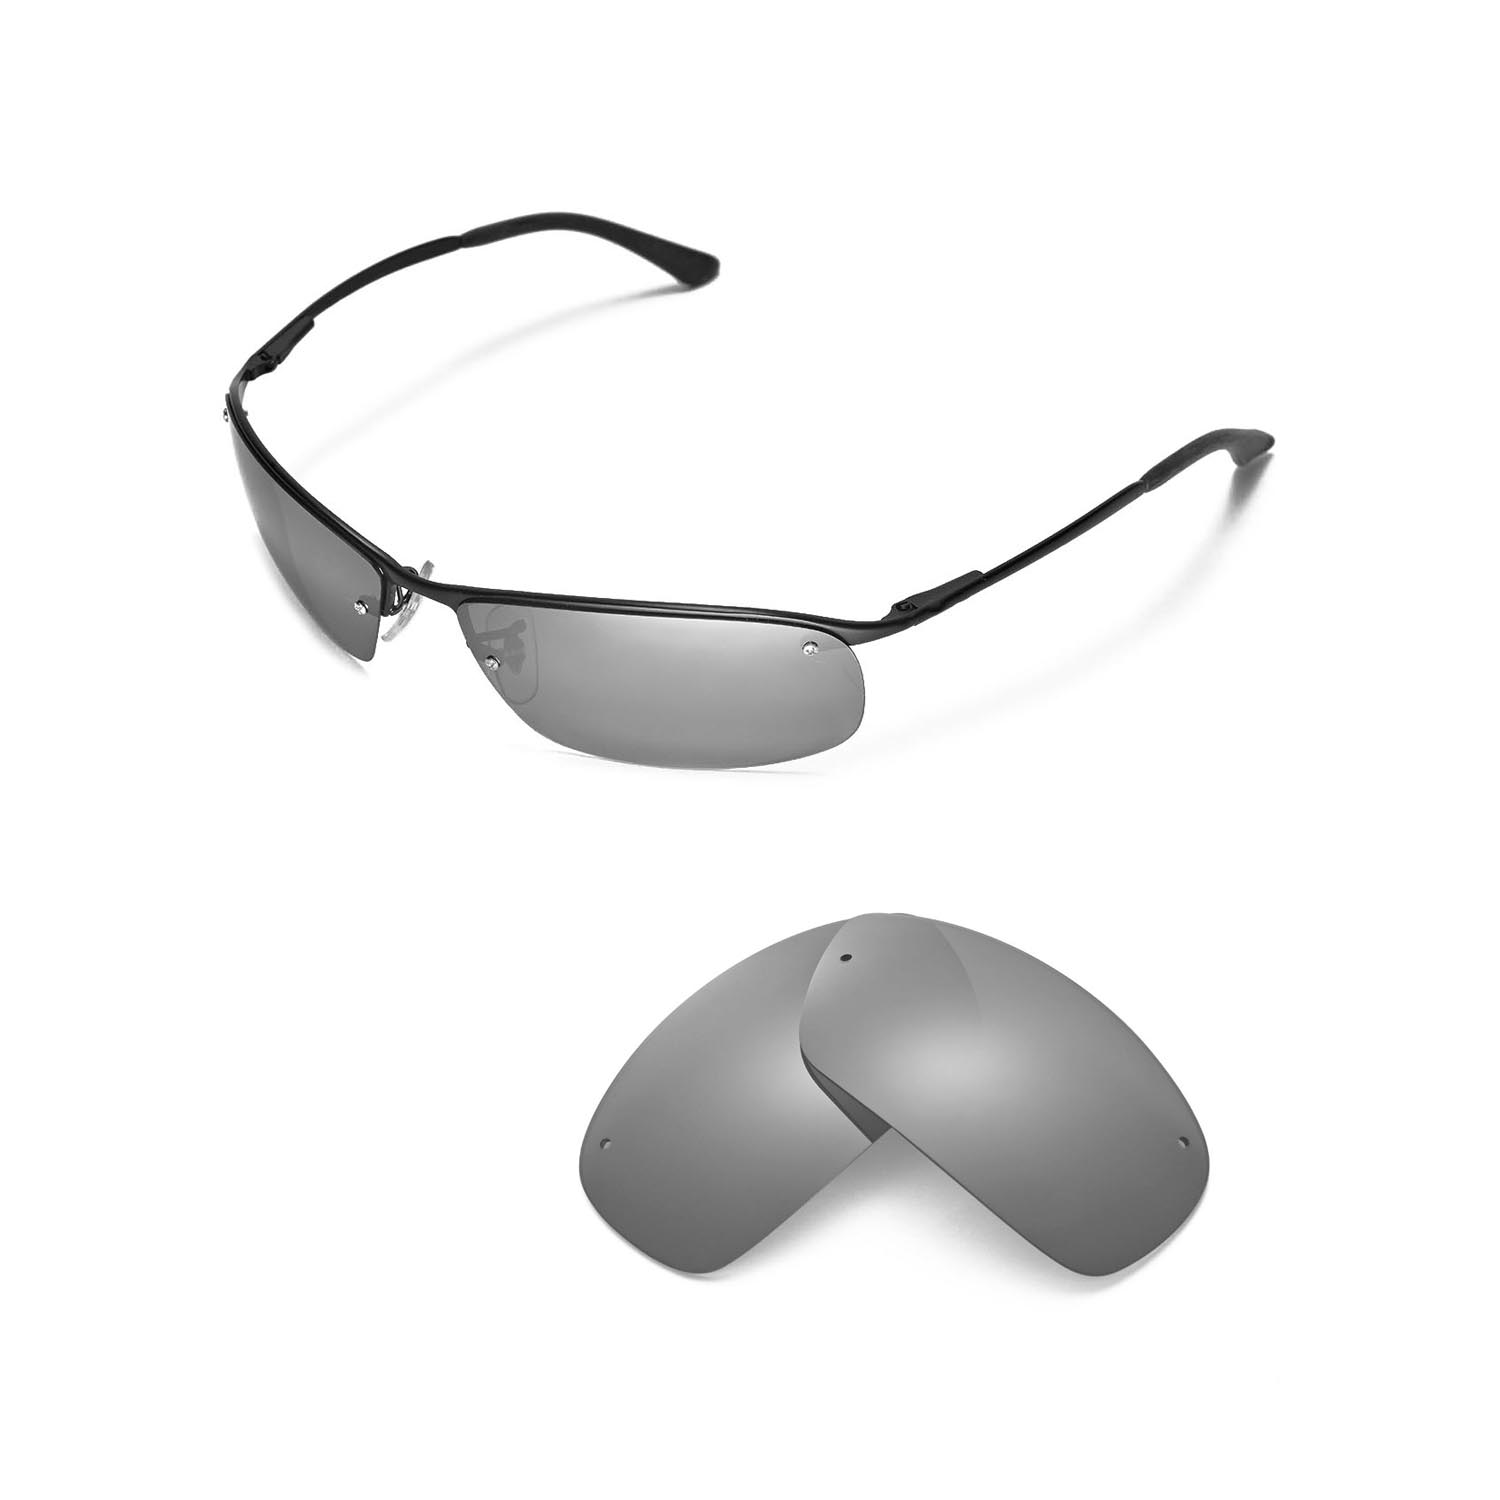 29053dfa5c6 Details about New Walleva Polarized Titanium Replacement For Ray-Ban RB3183  63mm